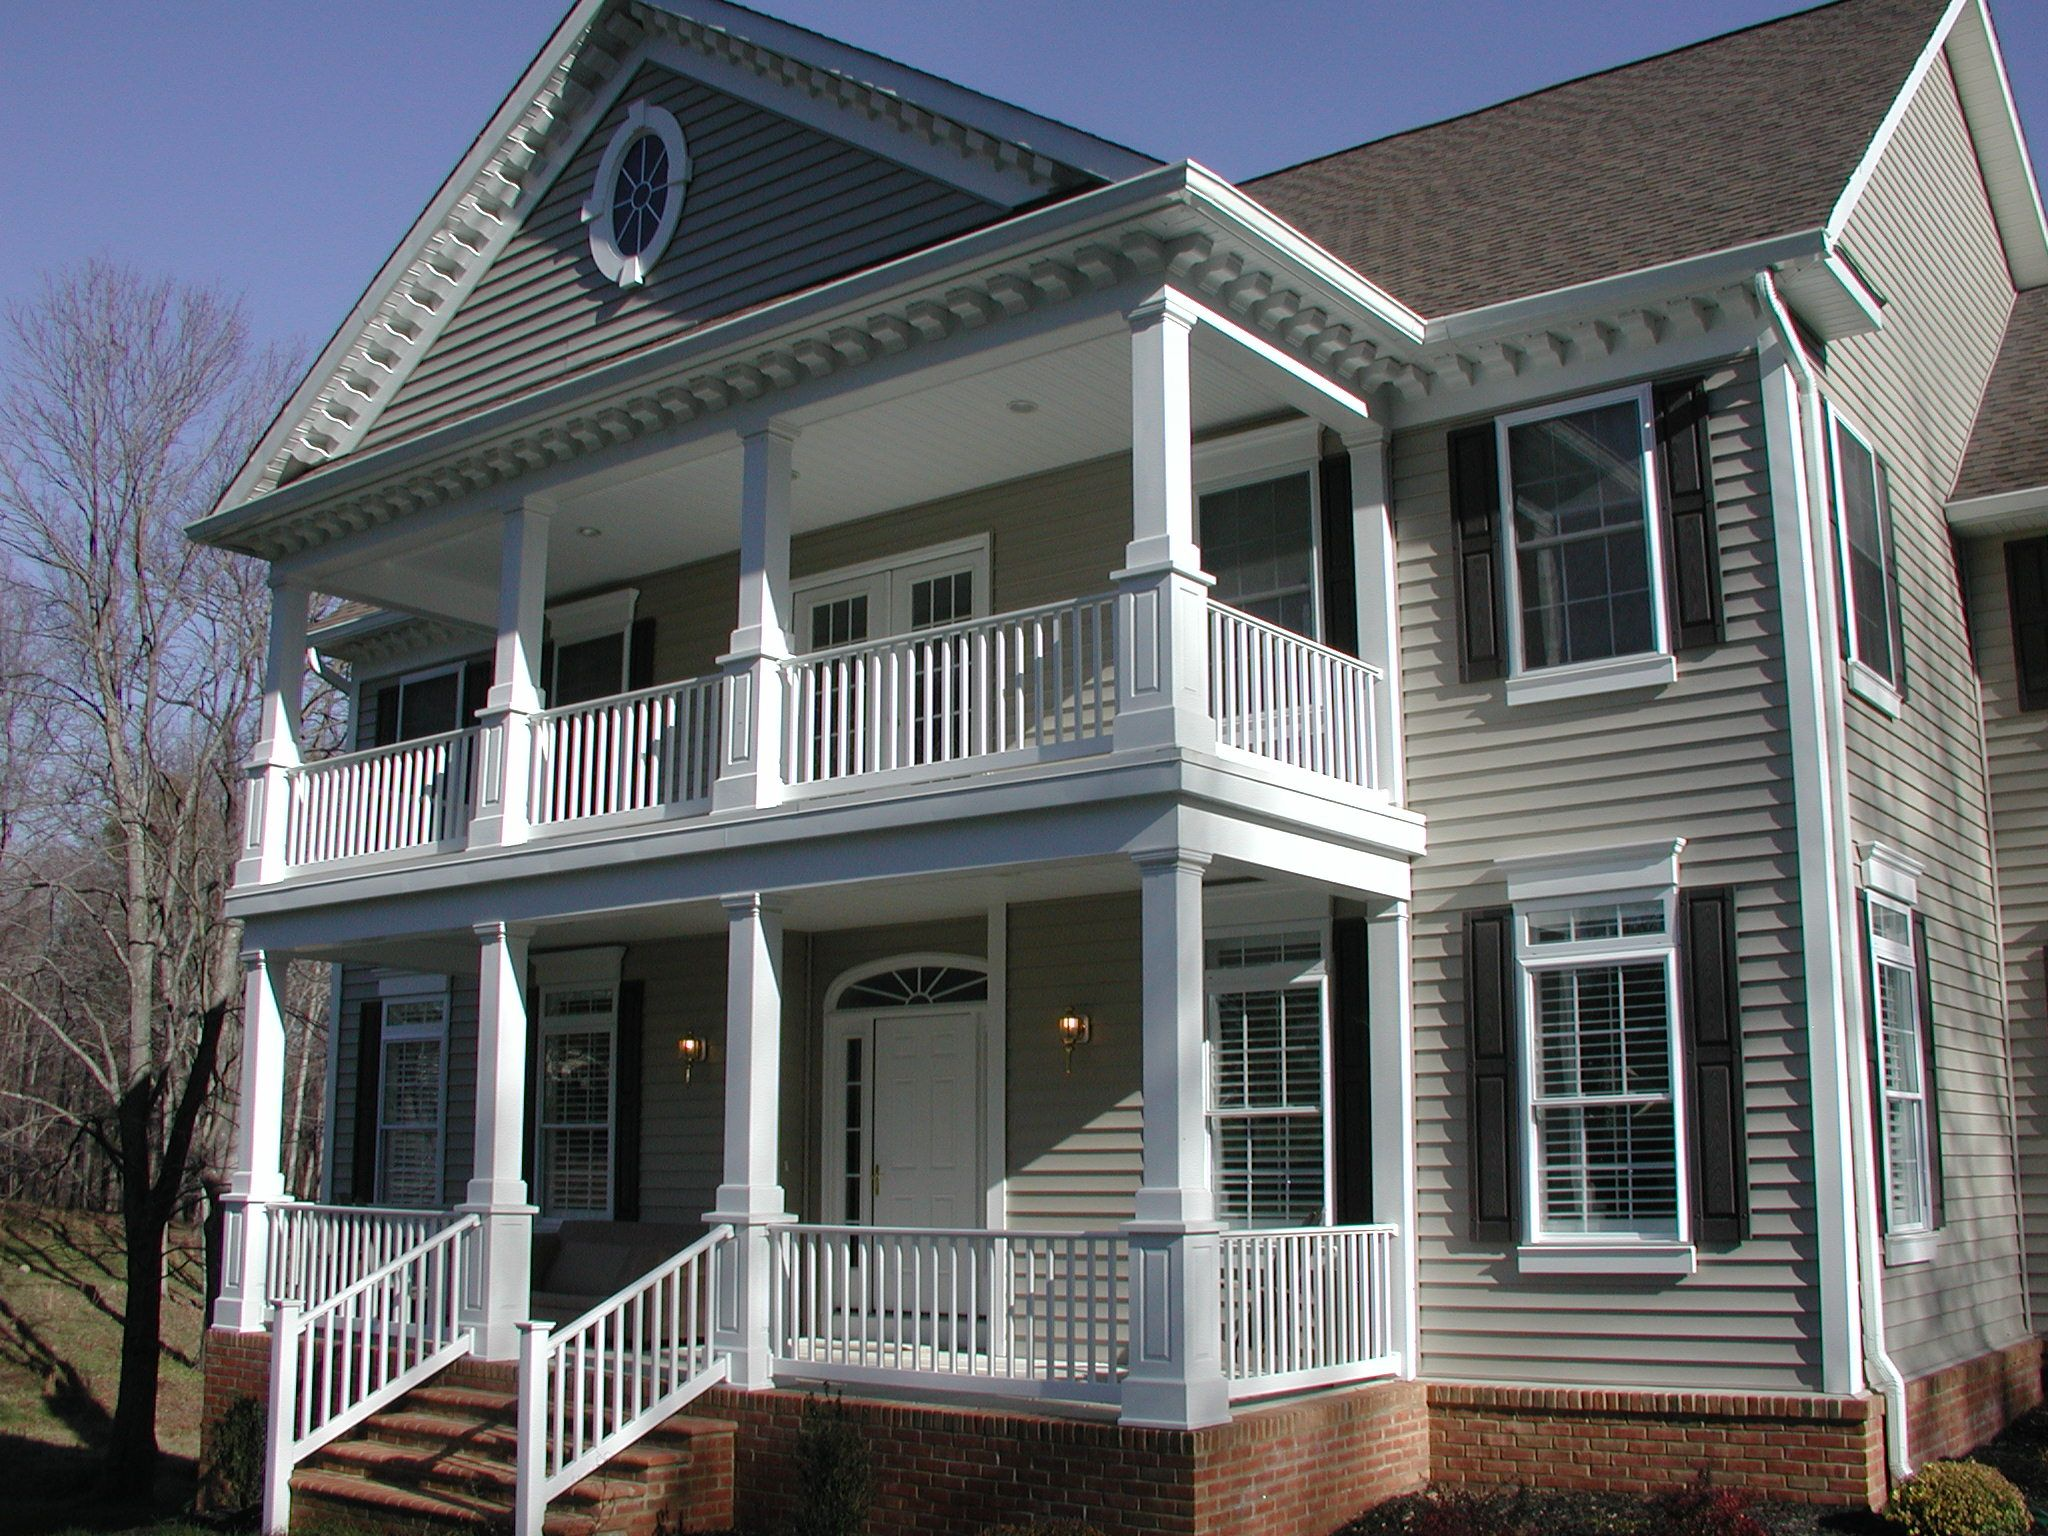 image result for two story front porch ideas plantation ForFront Porch Designs For Two Story Houses